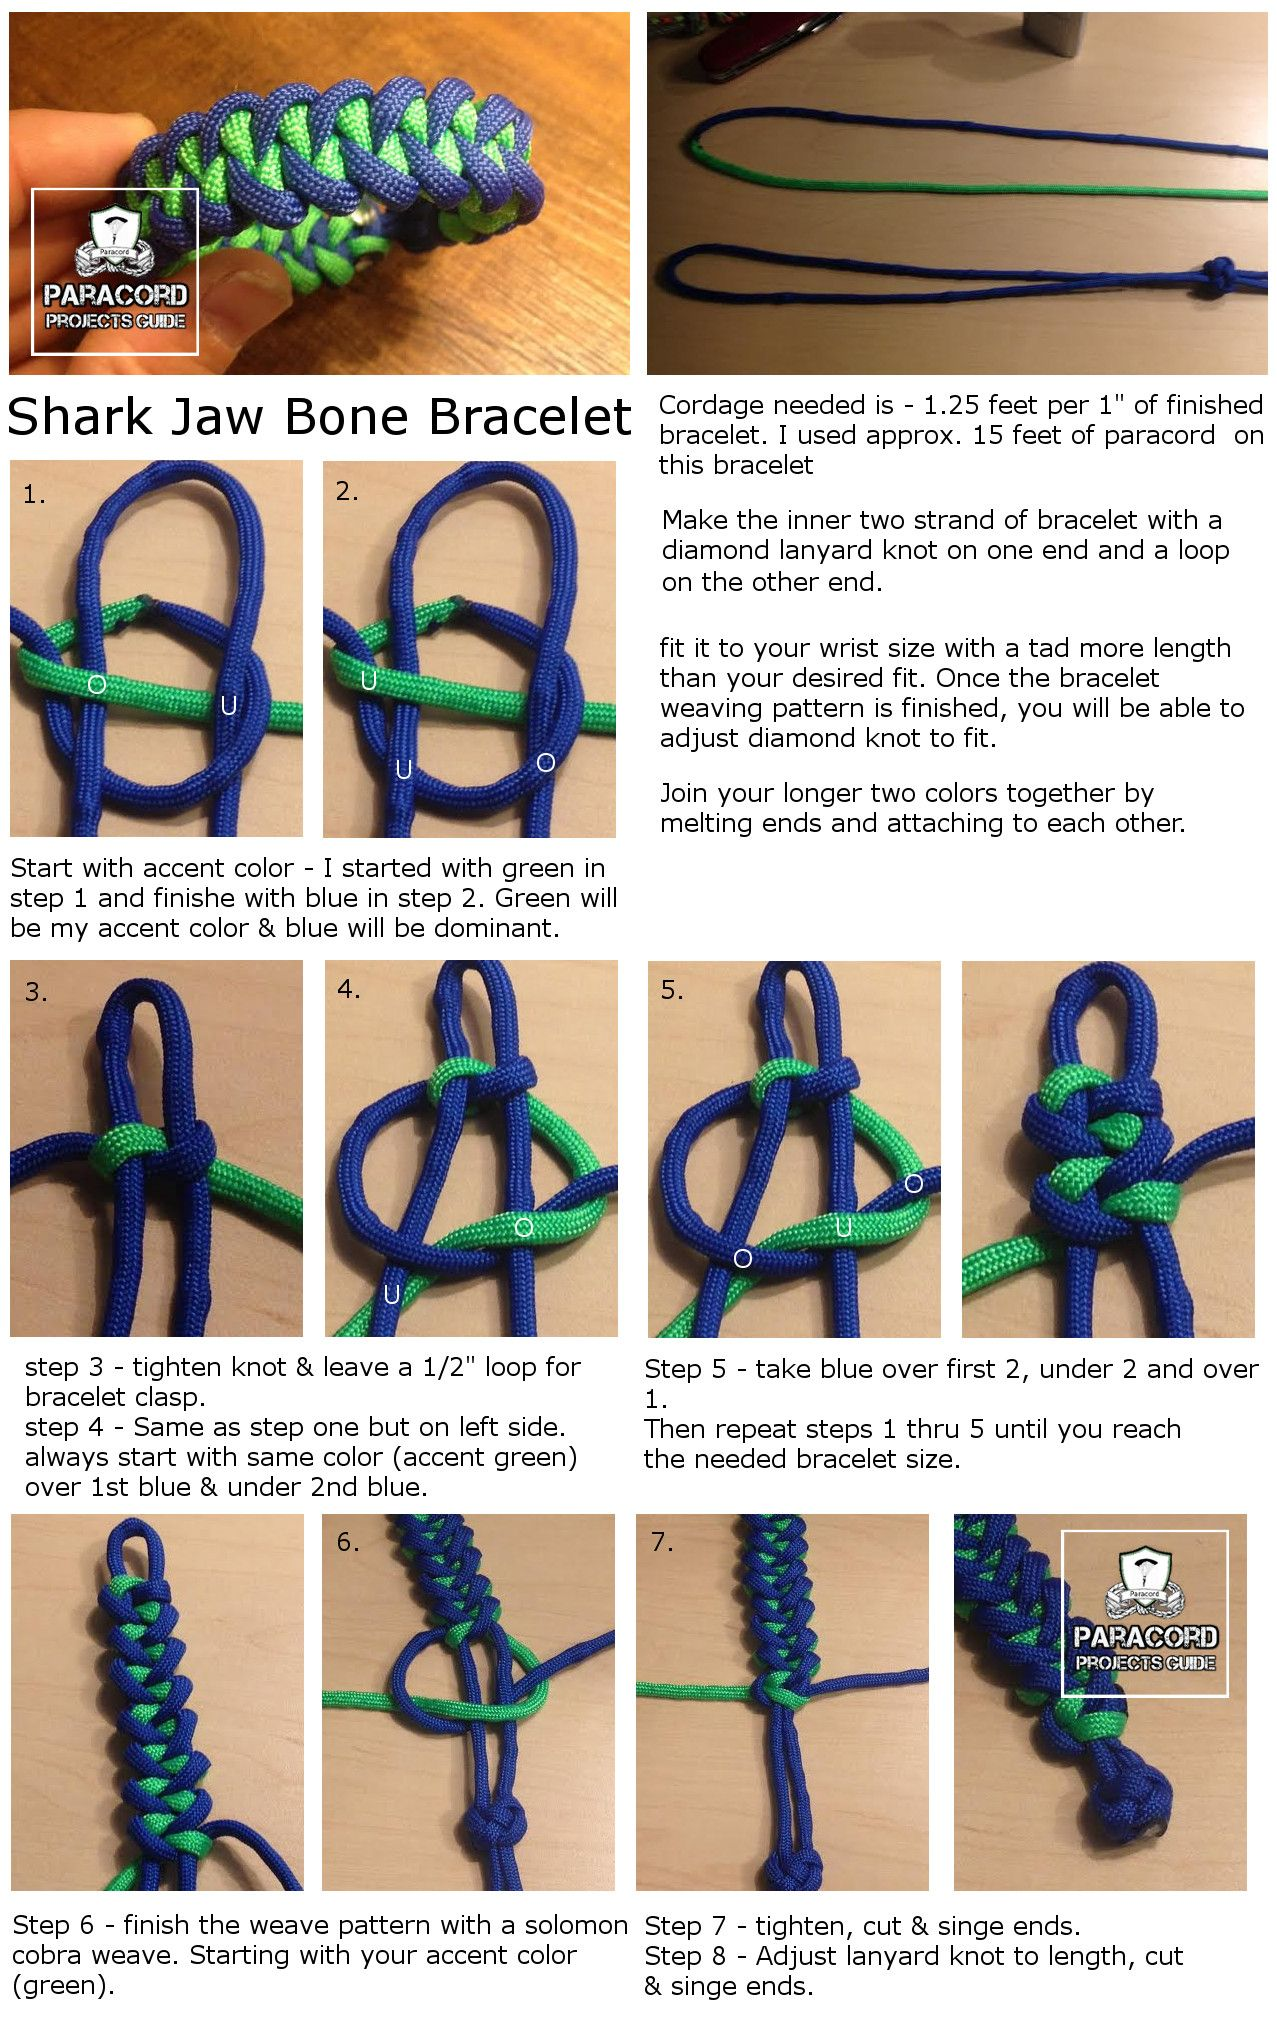 How To Make A Shark Jaw Bone Paracord Bracelet With Images